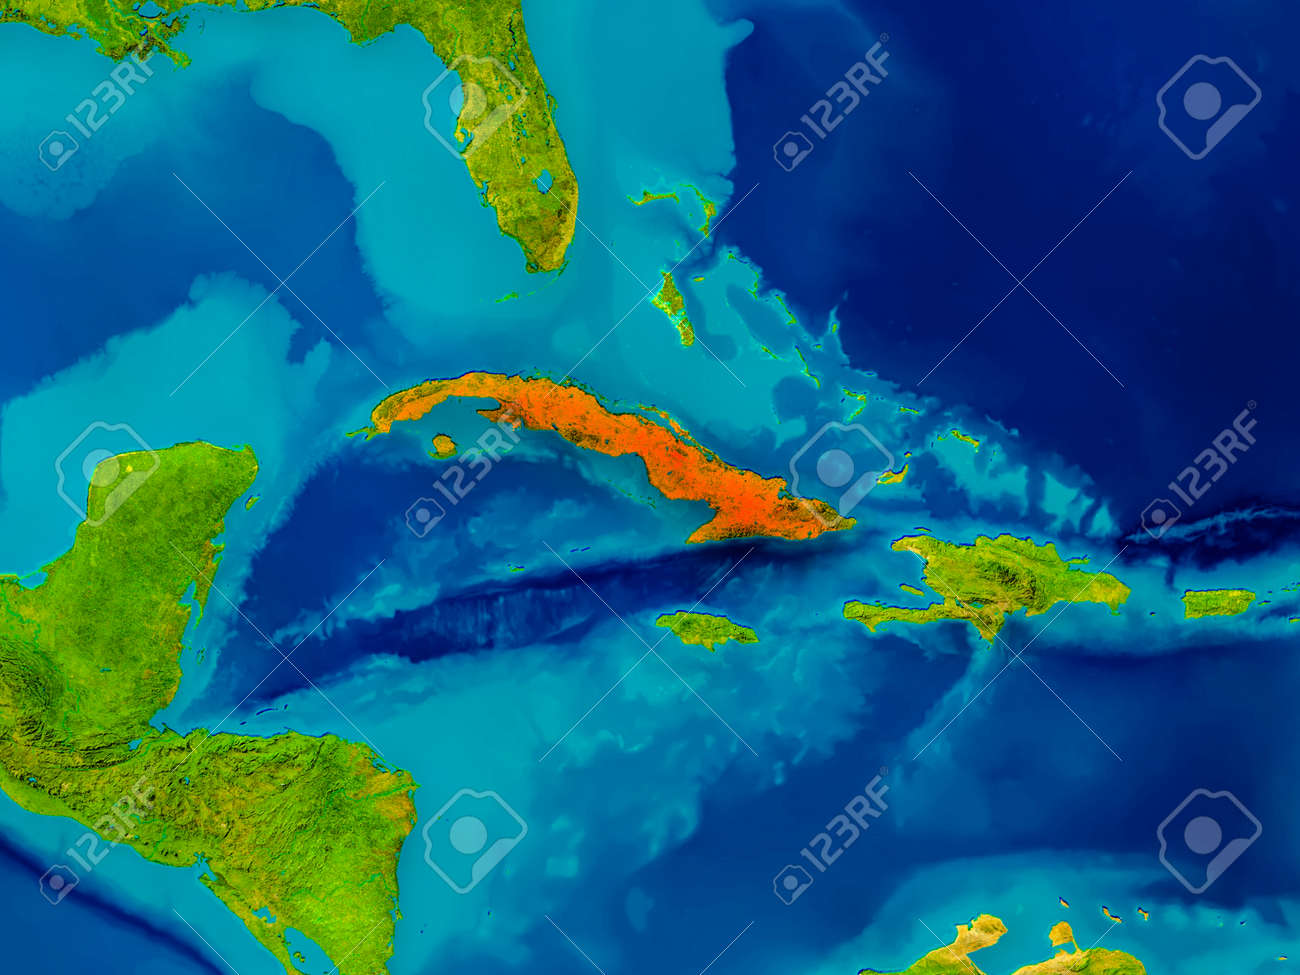 Cuba Highlighted In Red On Physical Map 3D Illustration Stock